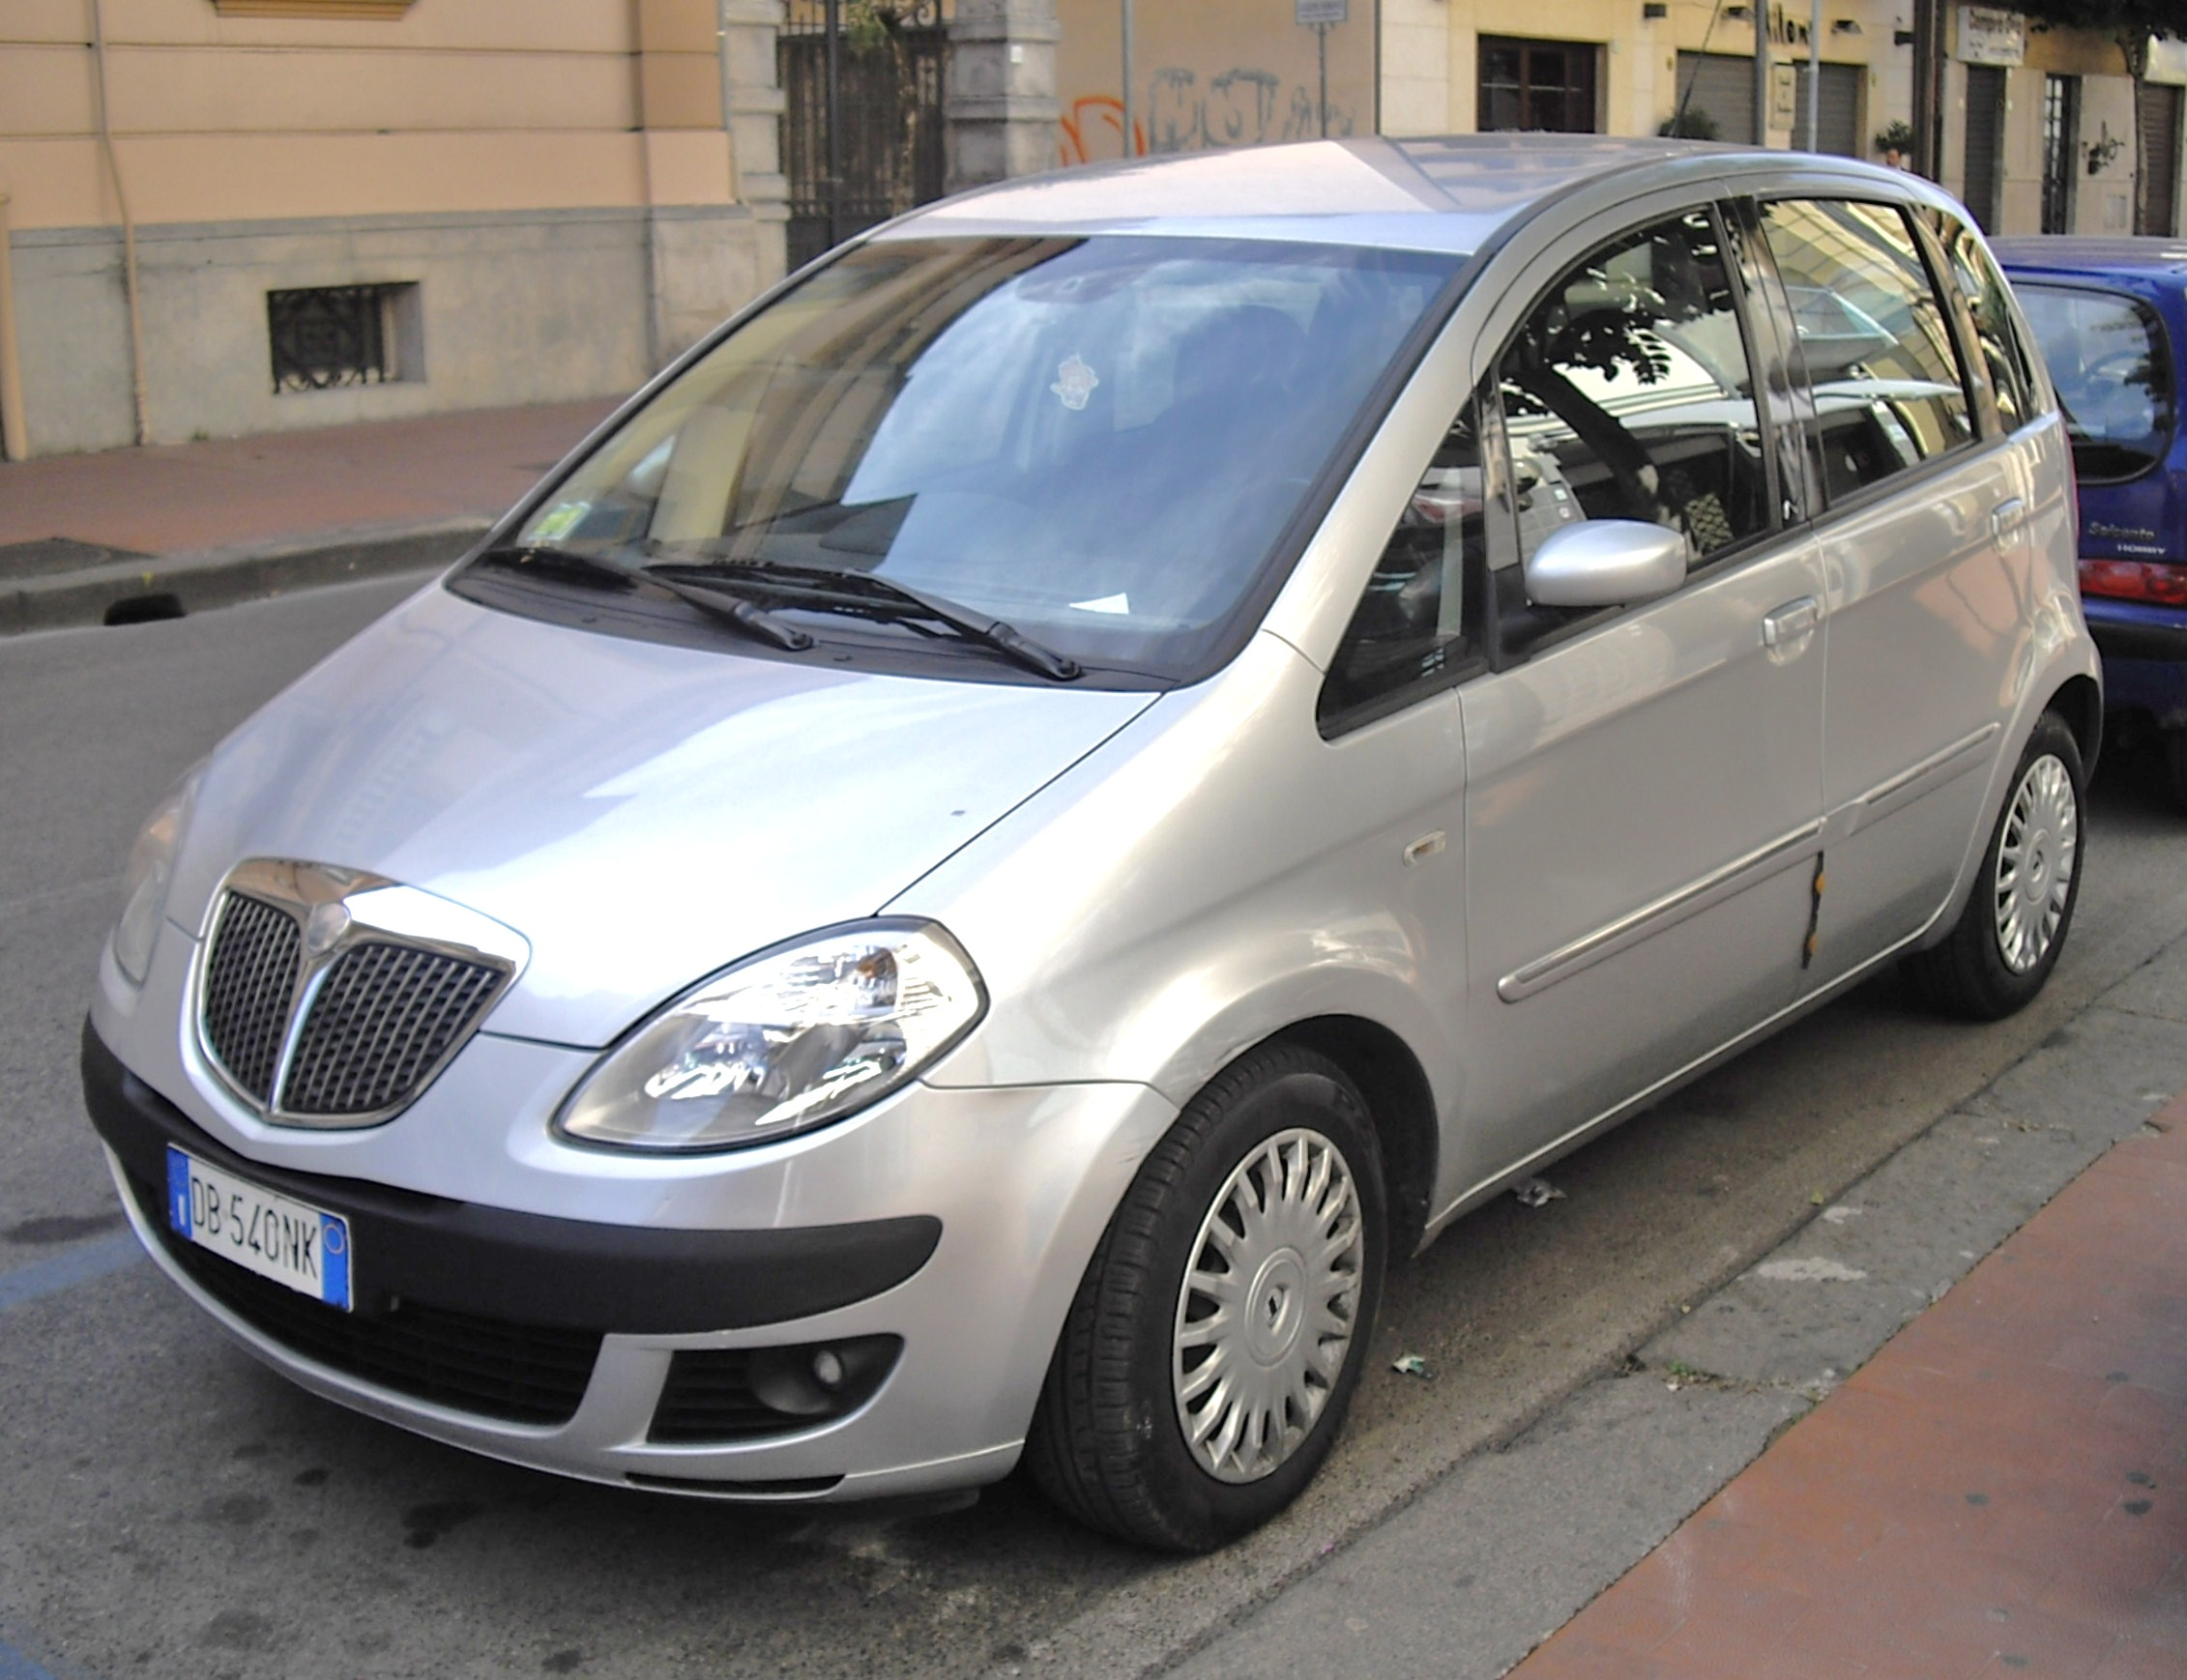 https://upload.wikimedia.org/wikipedia/commons/1/16/2005_Lancia_Musa.jpg